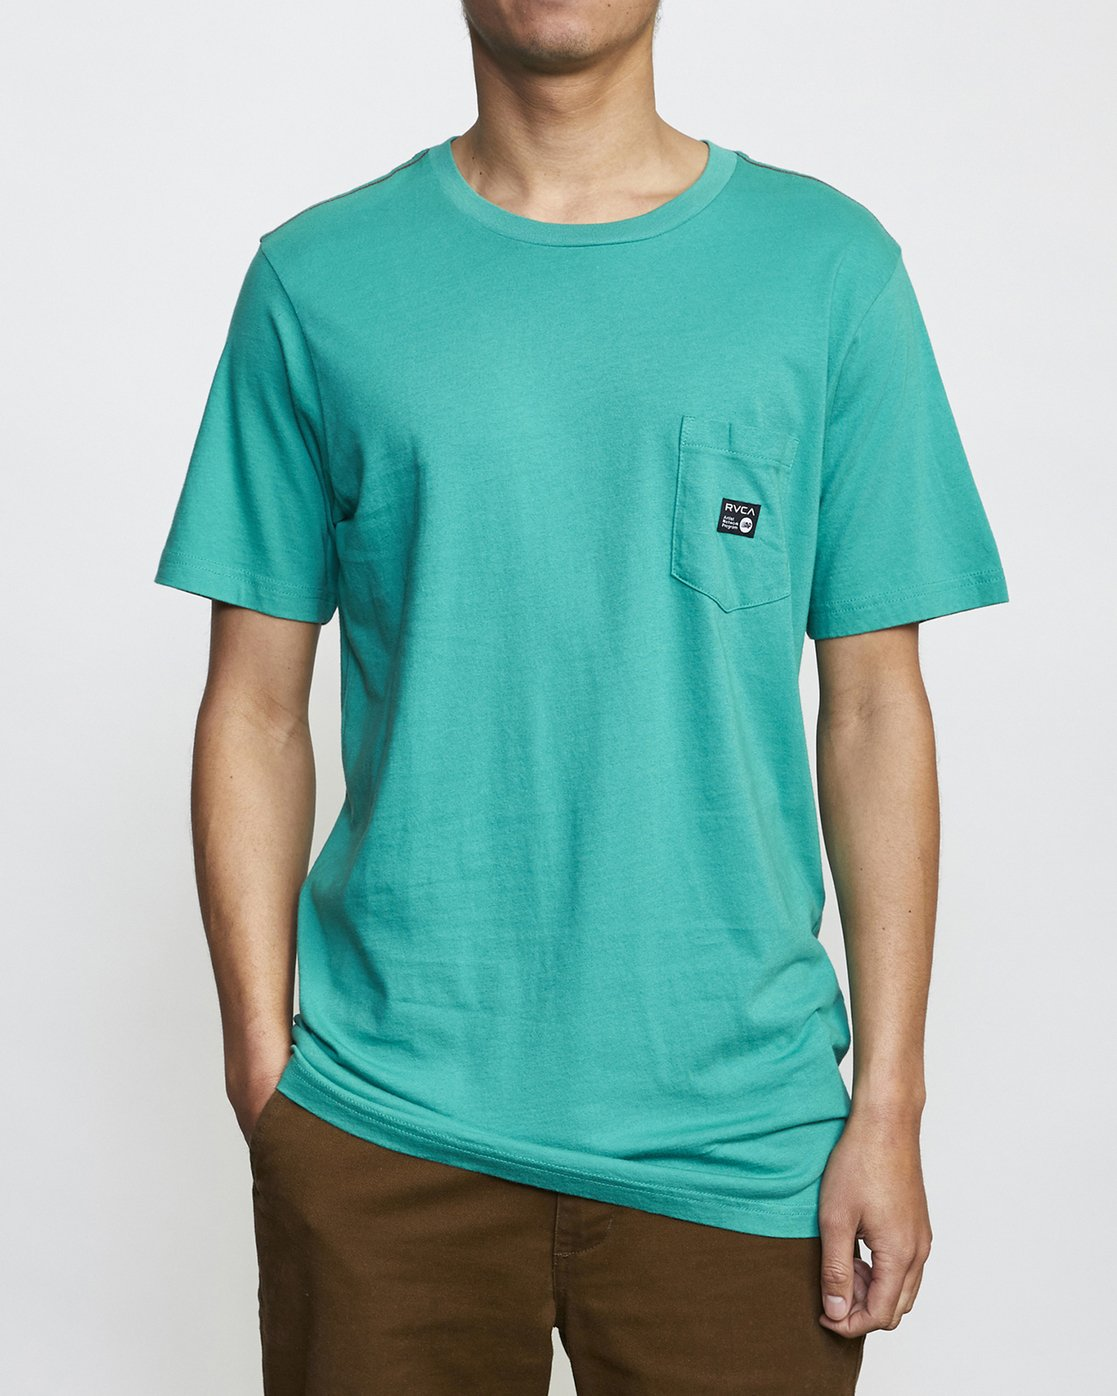 0 ANP Pocket T-Shirt Green M436VRAN RVCA